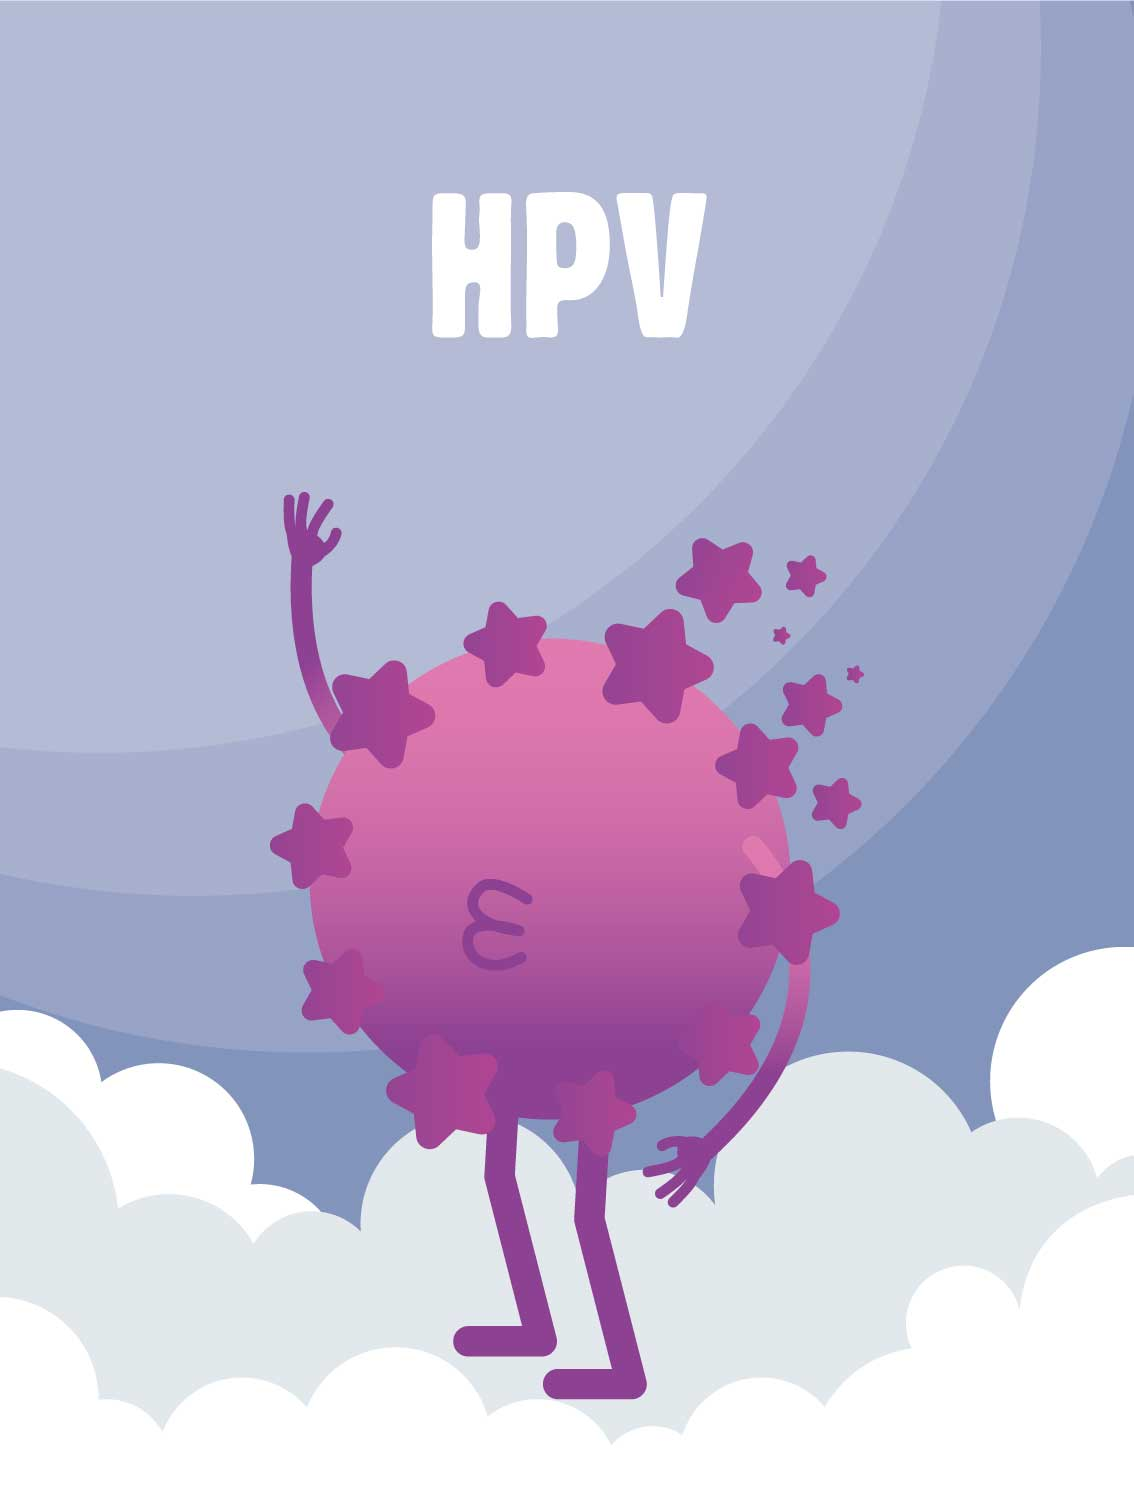 hpv by skin contact